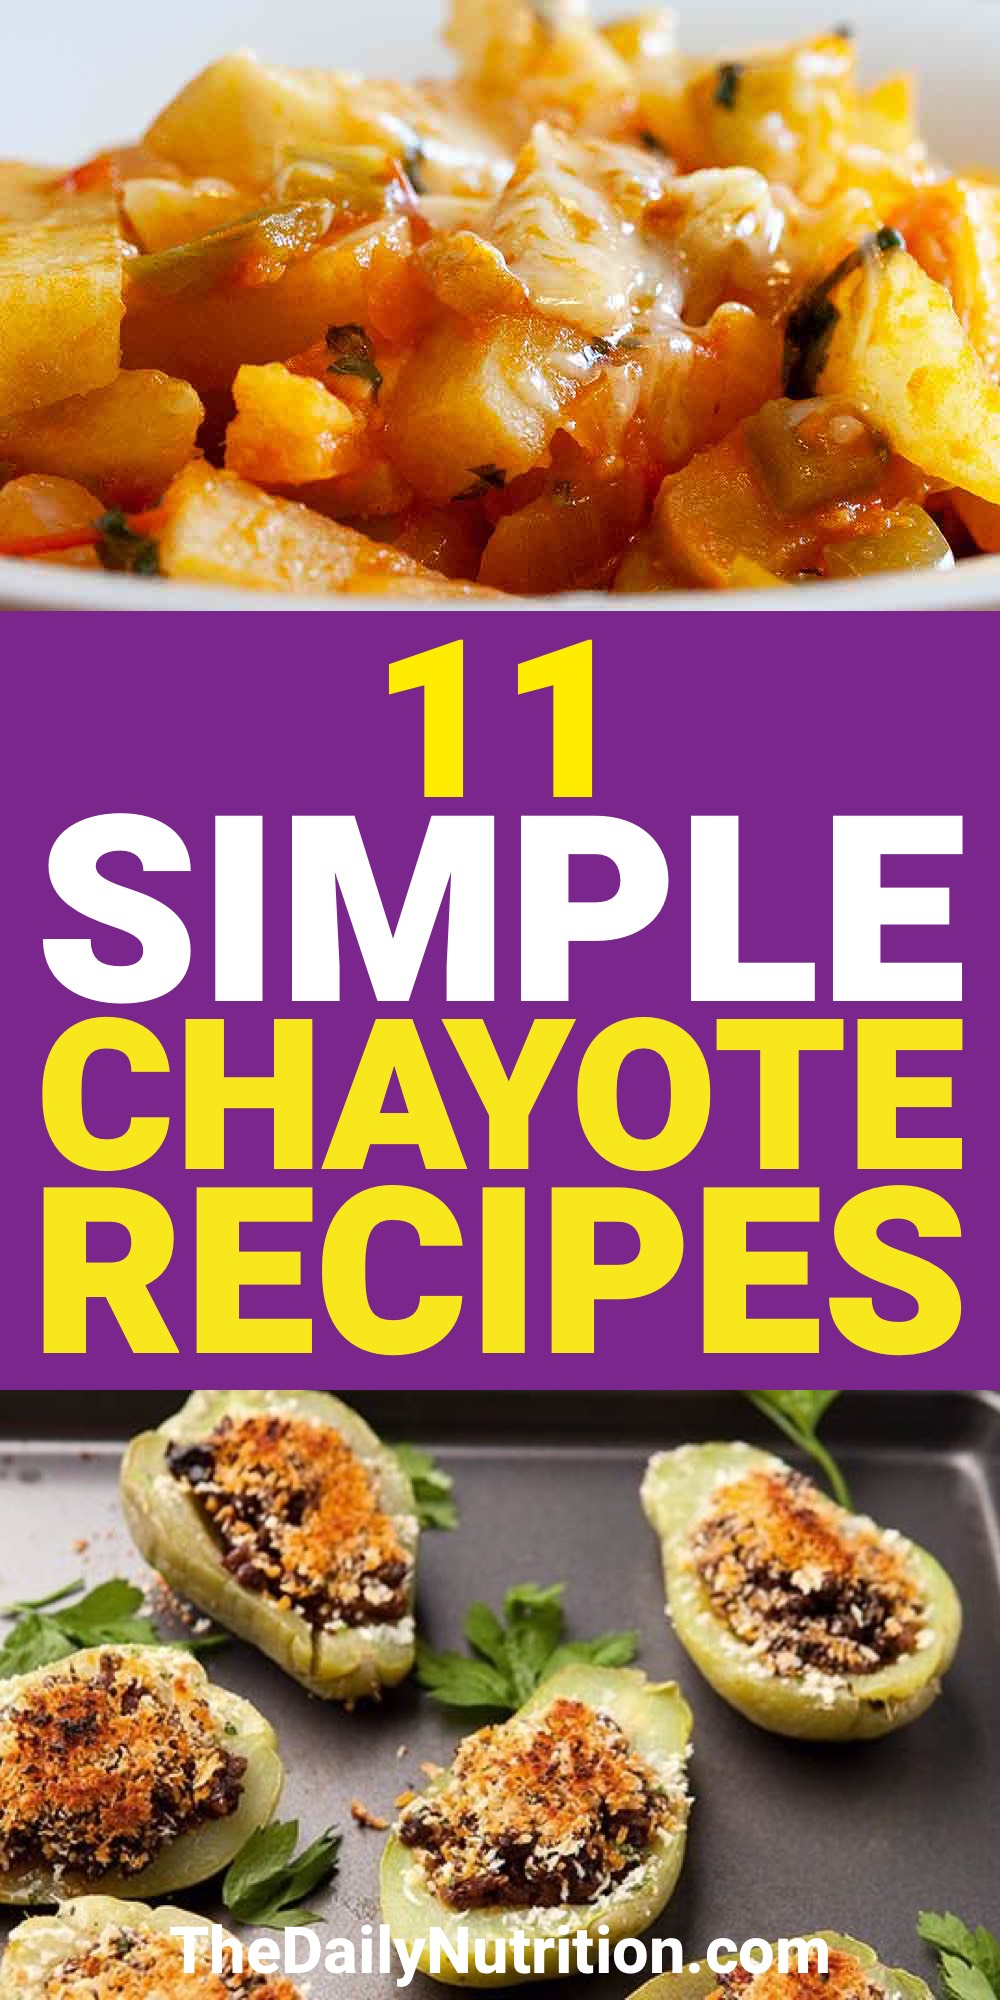 Chayote is a food that everyone should try at least once. Here are 11 chayote recipes that can give you that chance.